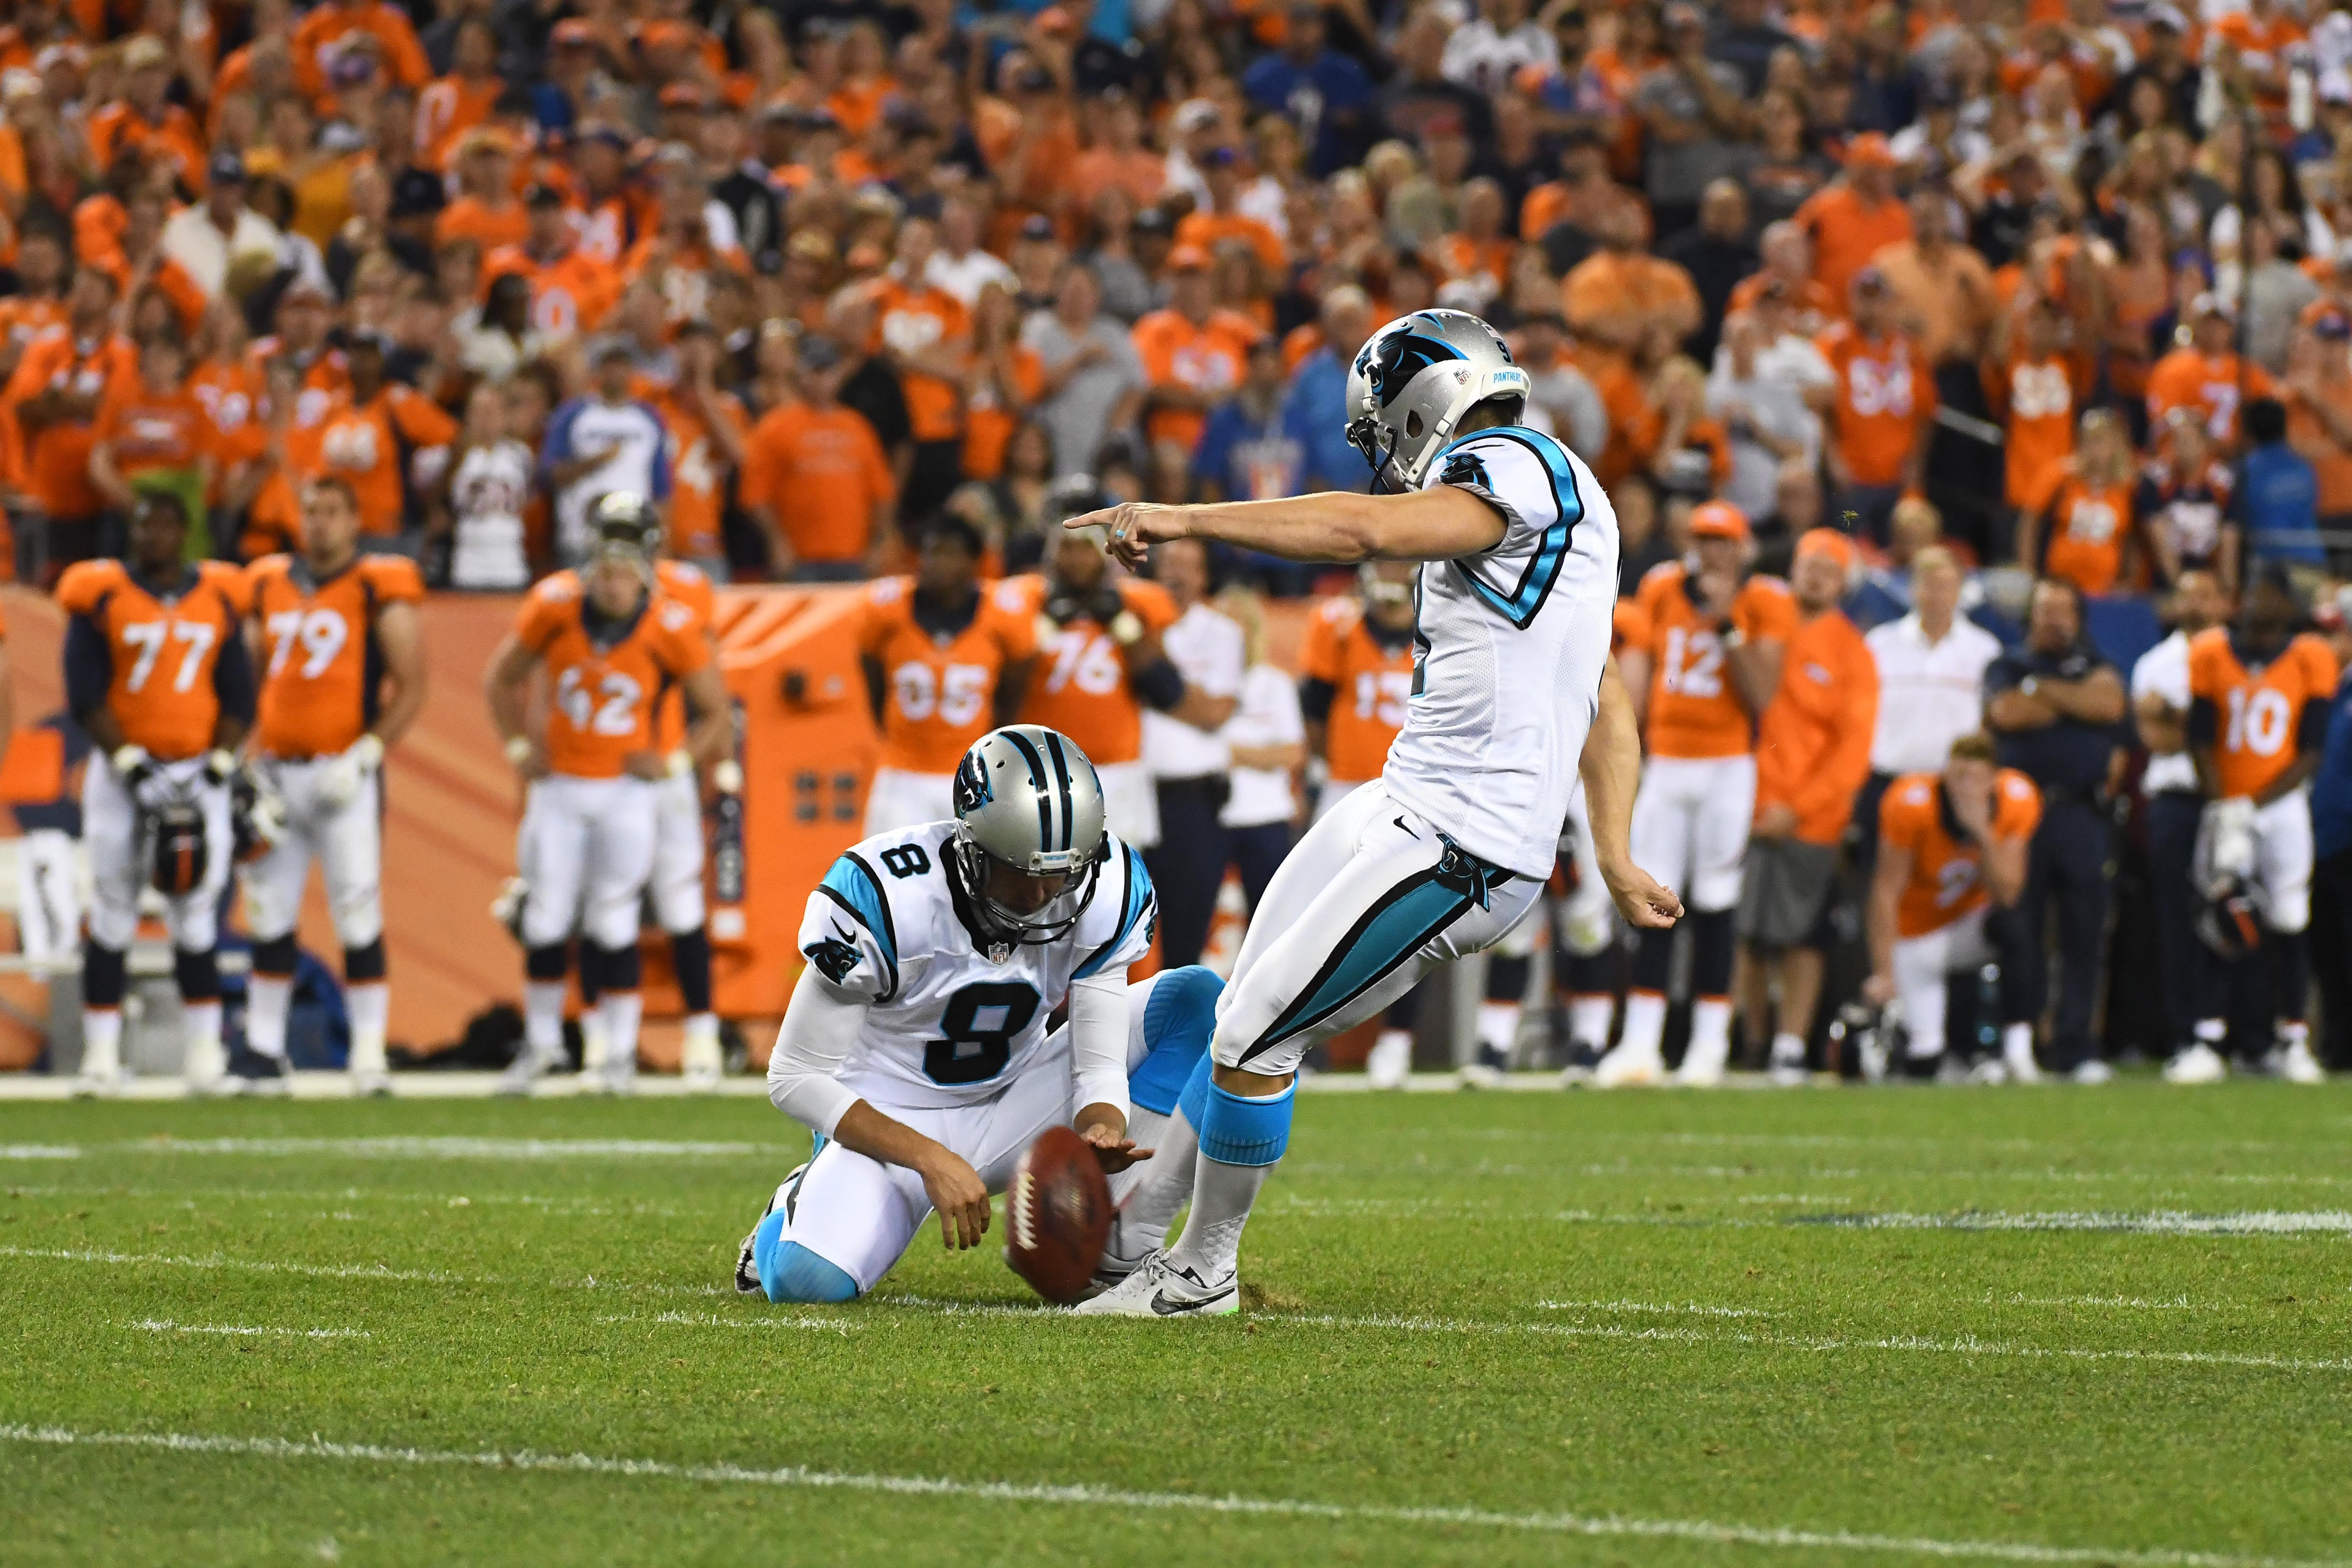 Sep 8, 2016; Denver, CO, USA; Carolina Panthers kicker Graham Gano (9) misses a fifty yard field goal attempt as punter Andy Lee (8) holds in the fourth quarter against the Denver Broncos at Sports Authority Field at Mile High. The Broncos defeated the Panthers 21-20. Mandatory Credit: Ron Chenoy-USA TODAY Sports